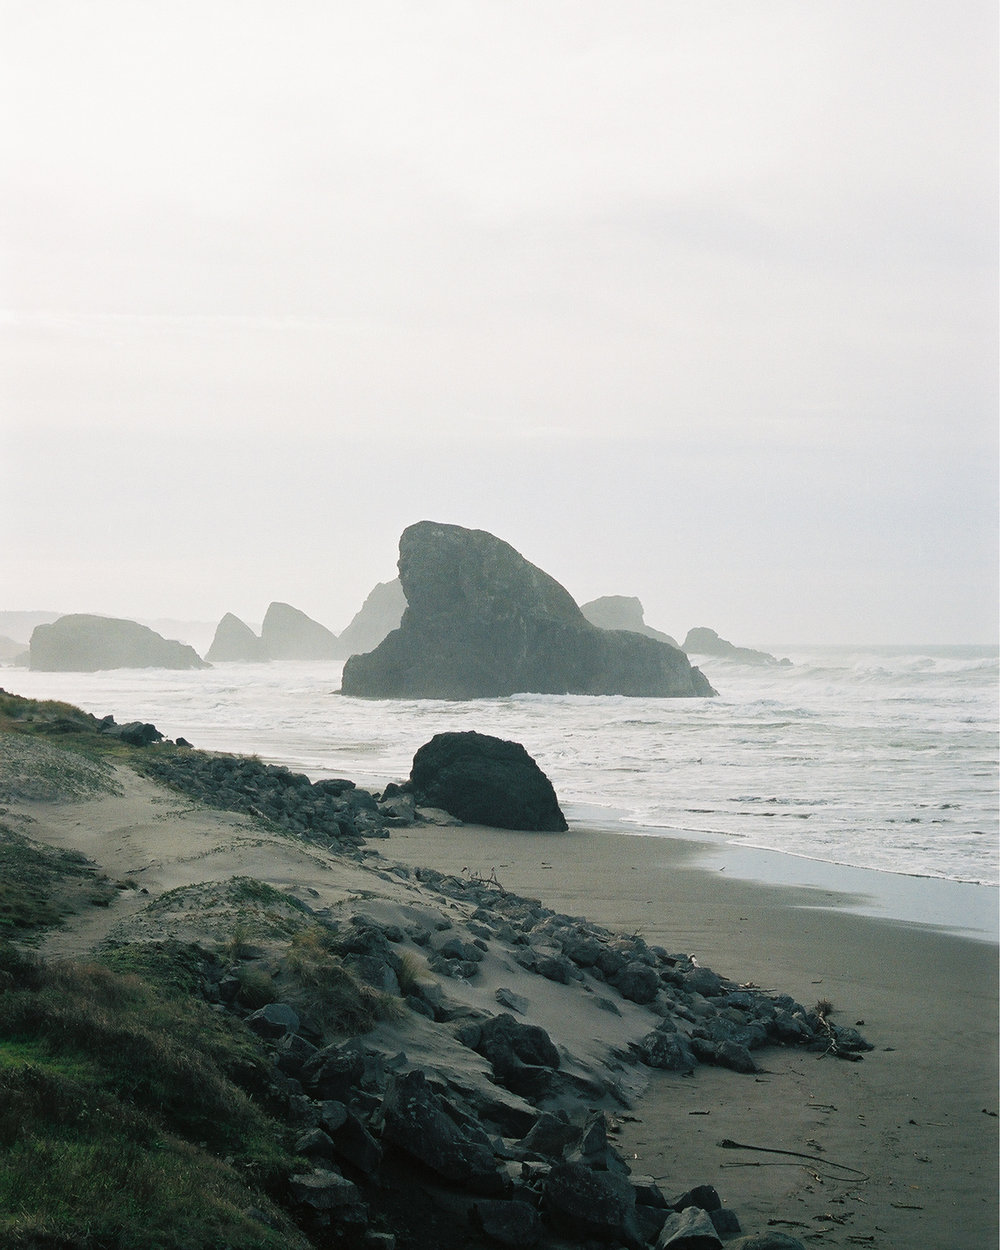 35mm-oregon-coast-04.jpg